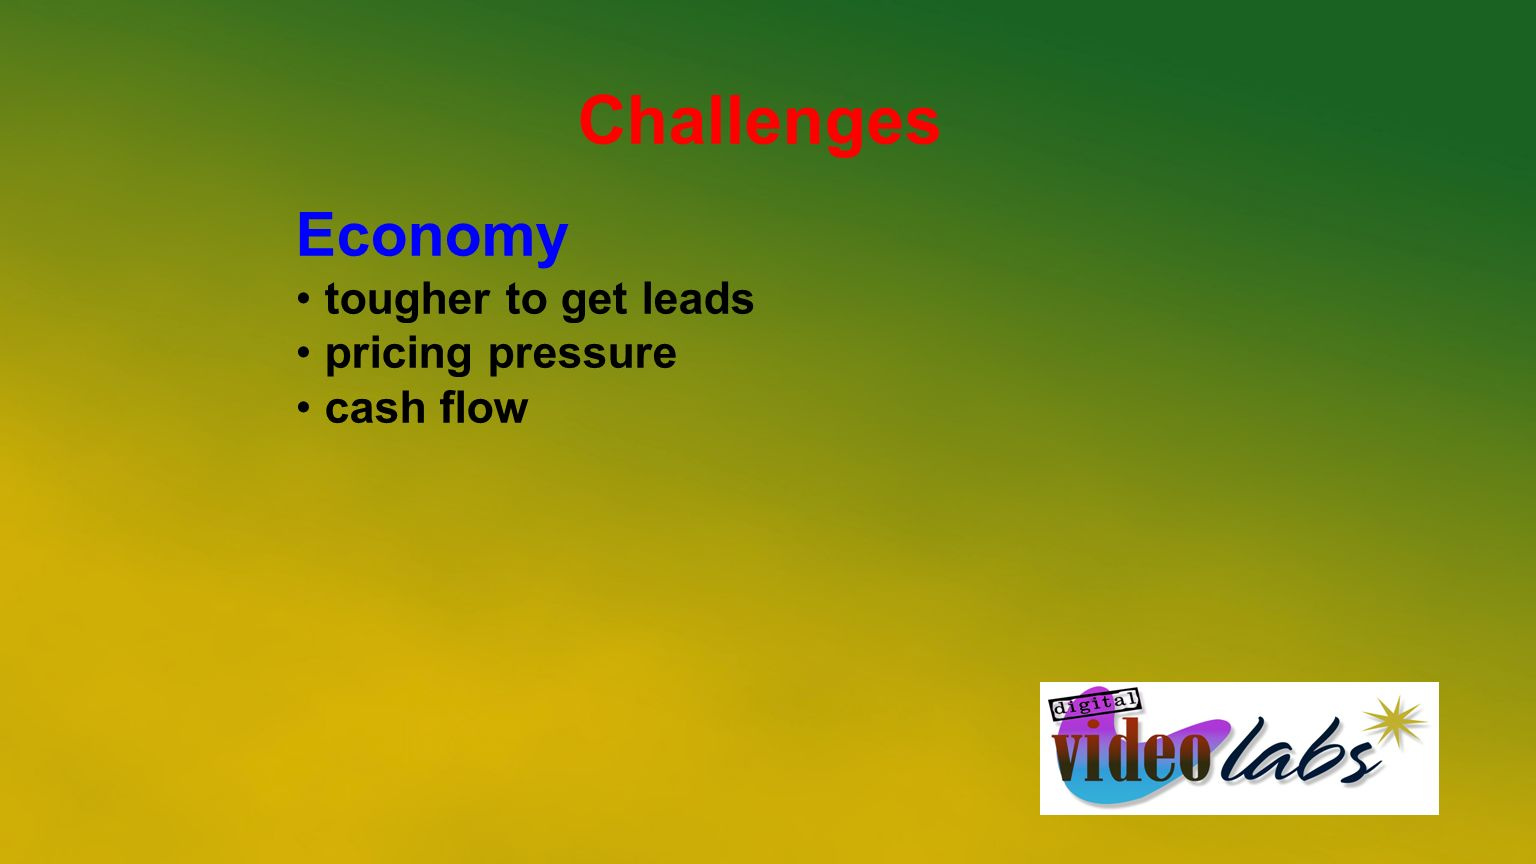 Challenges Economy tougher to get leads pricing pressure cash flow